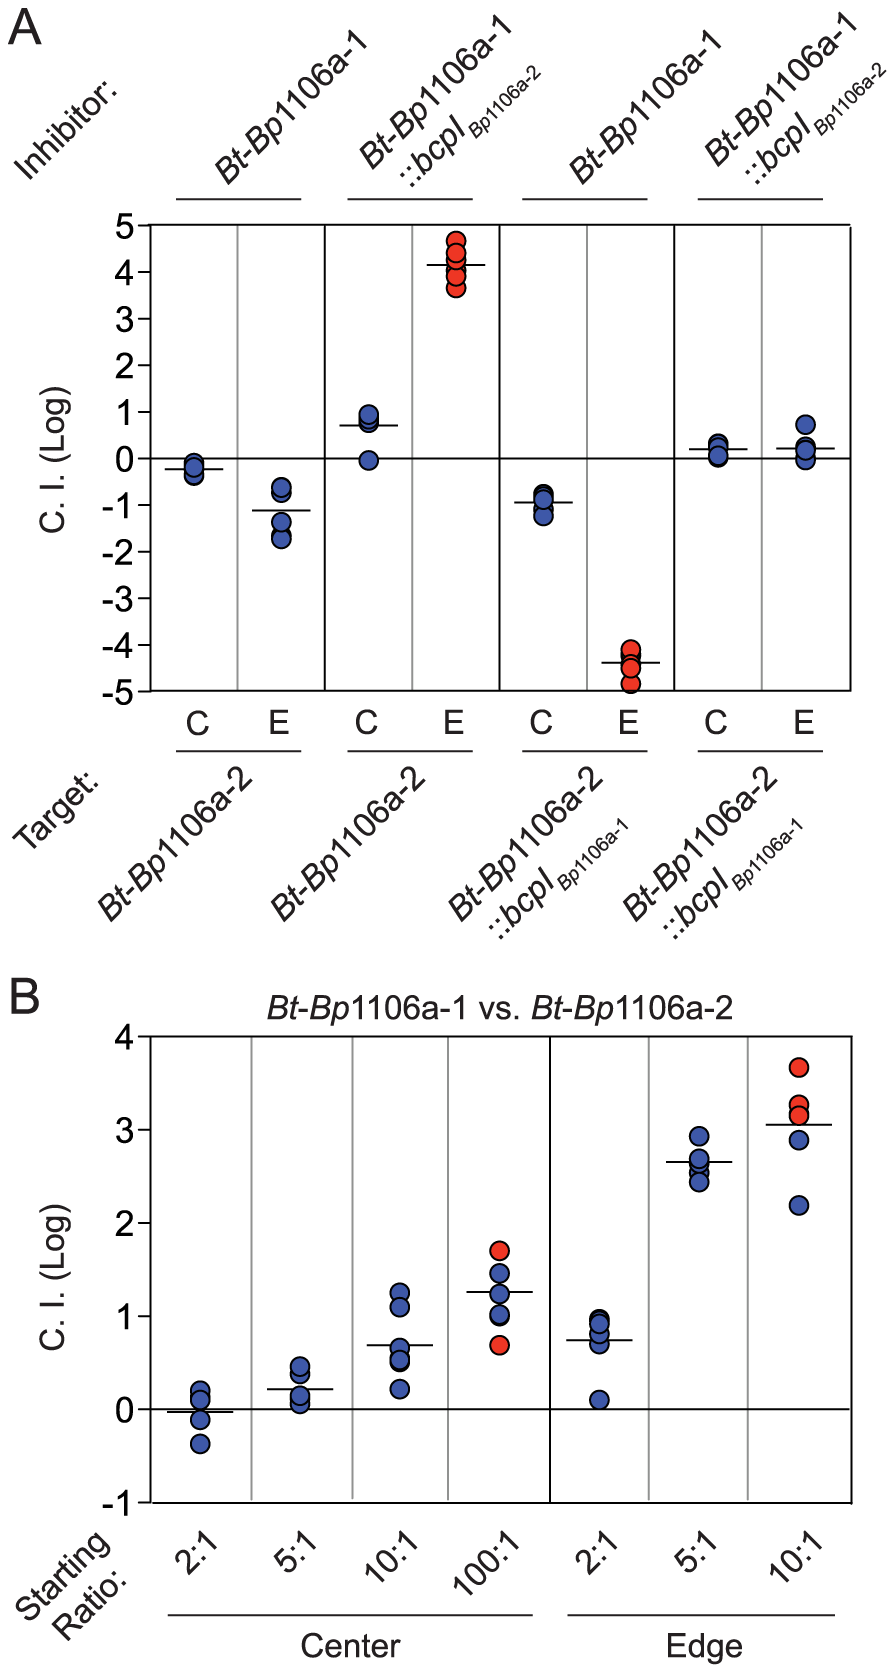 Dependence of bacterial numbers on CDI-mediated competition between opposing CDI<sup>+</sup> bacteria.